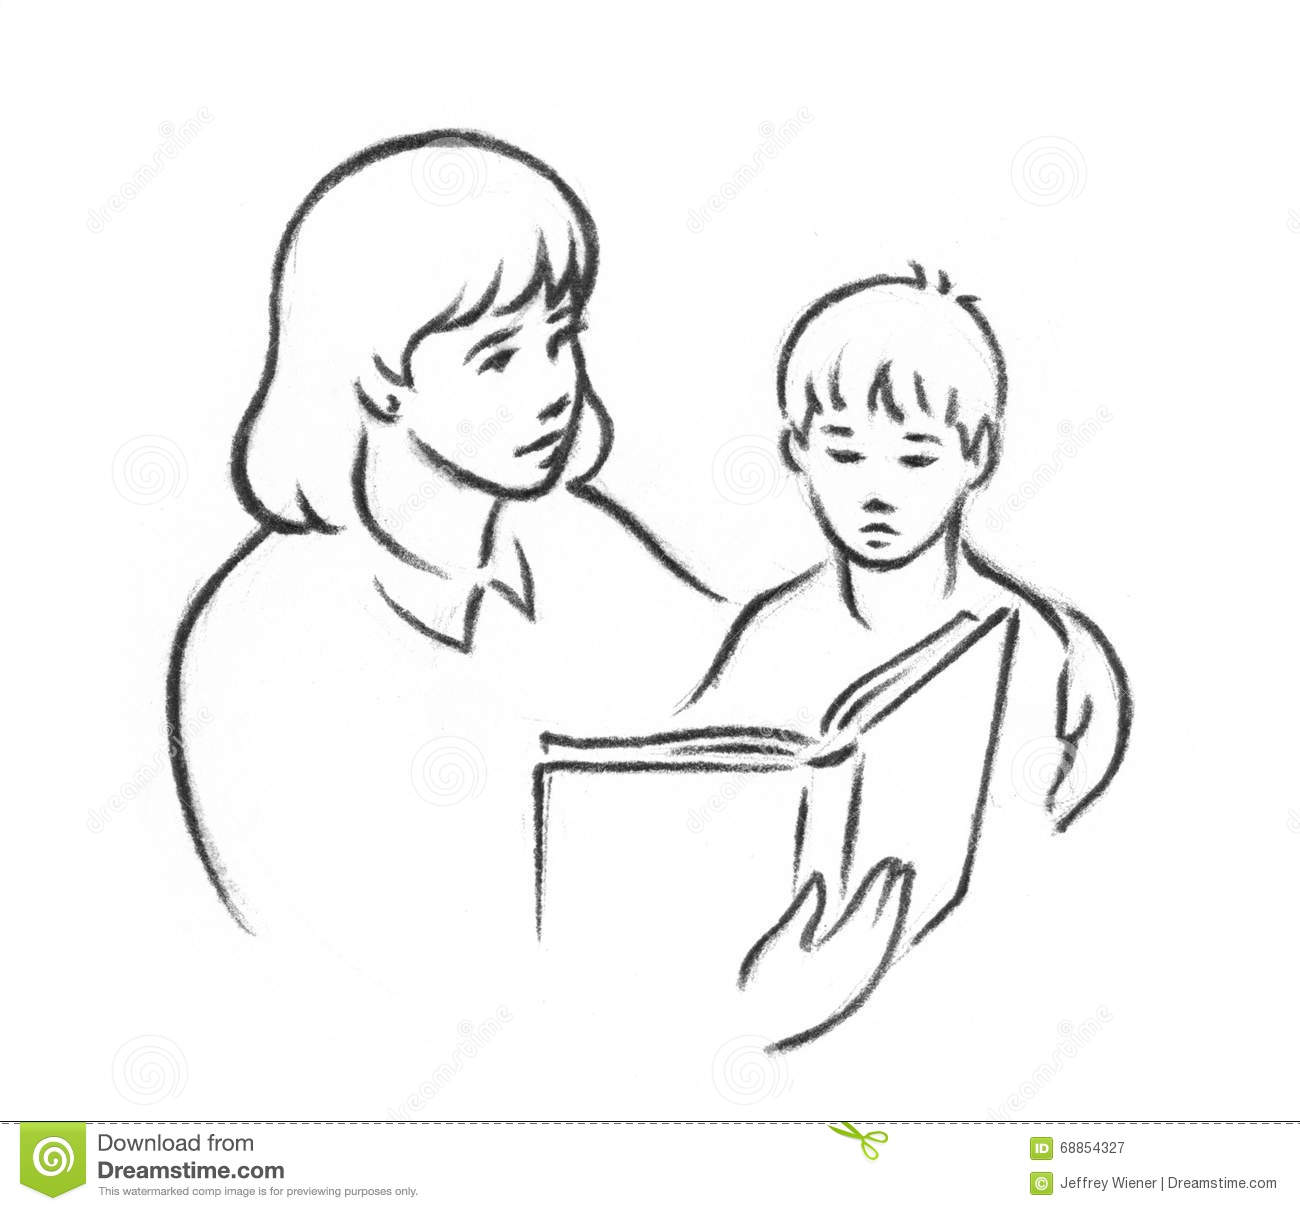 A pencil sketch of a female teacher or mother reading to a young child